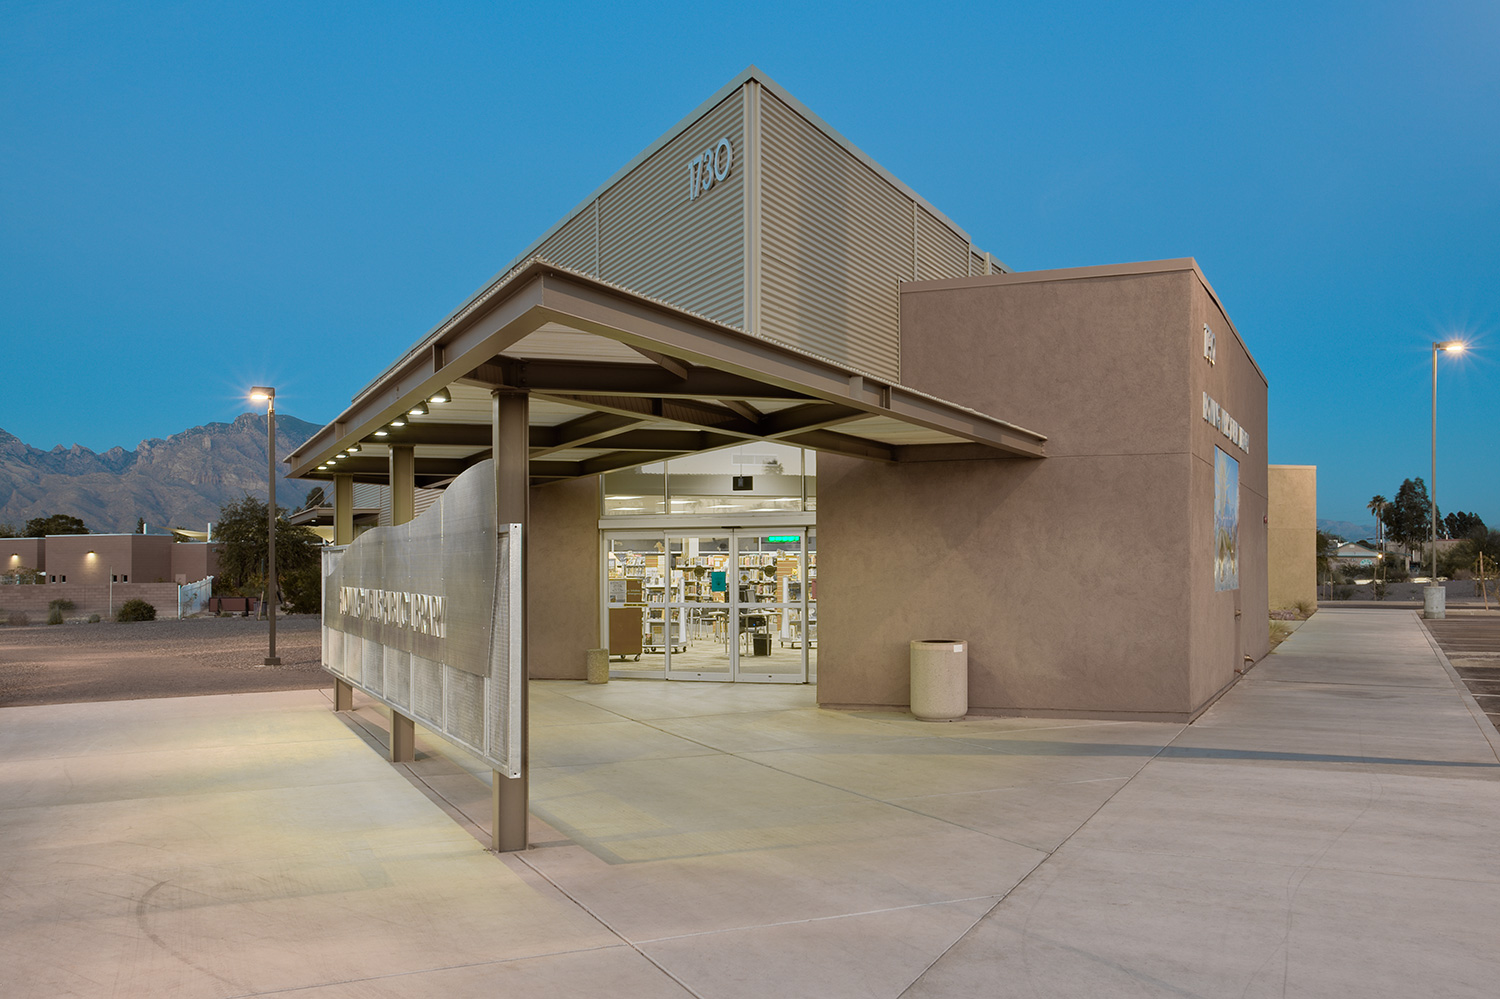 Flowing Wells Public Library   Tucson, Arizona | Pima County   click for more photos